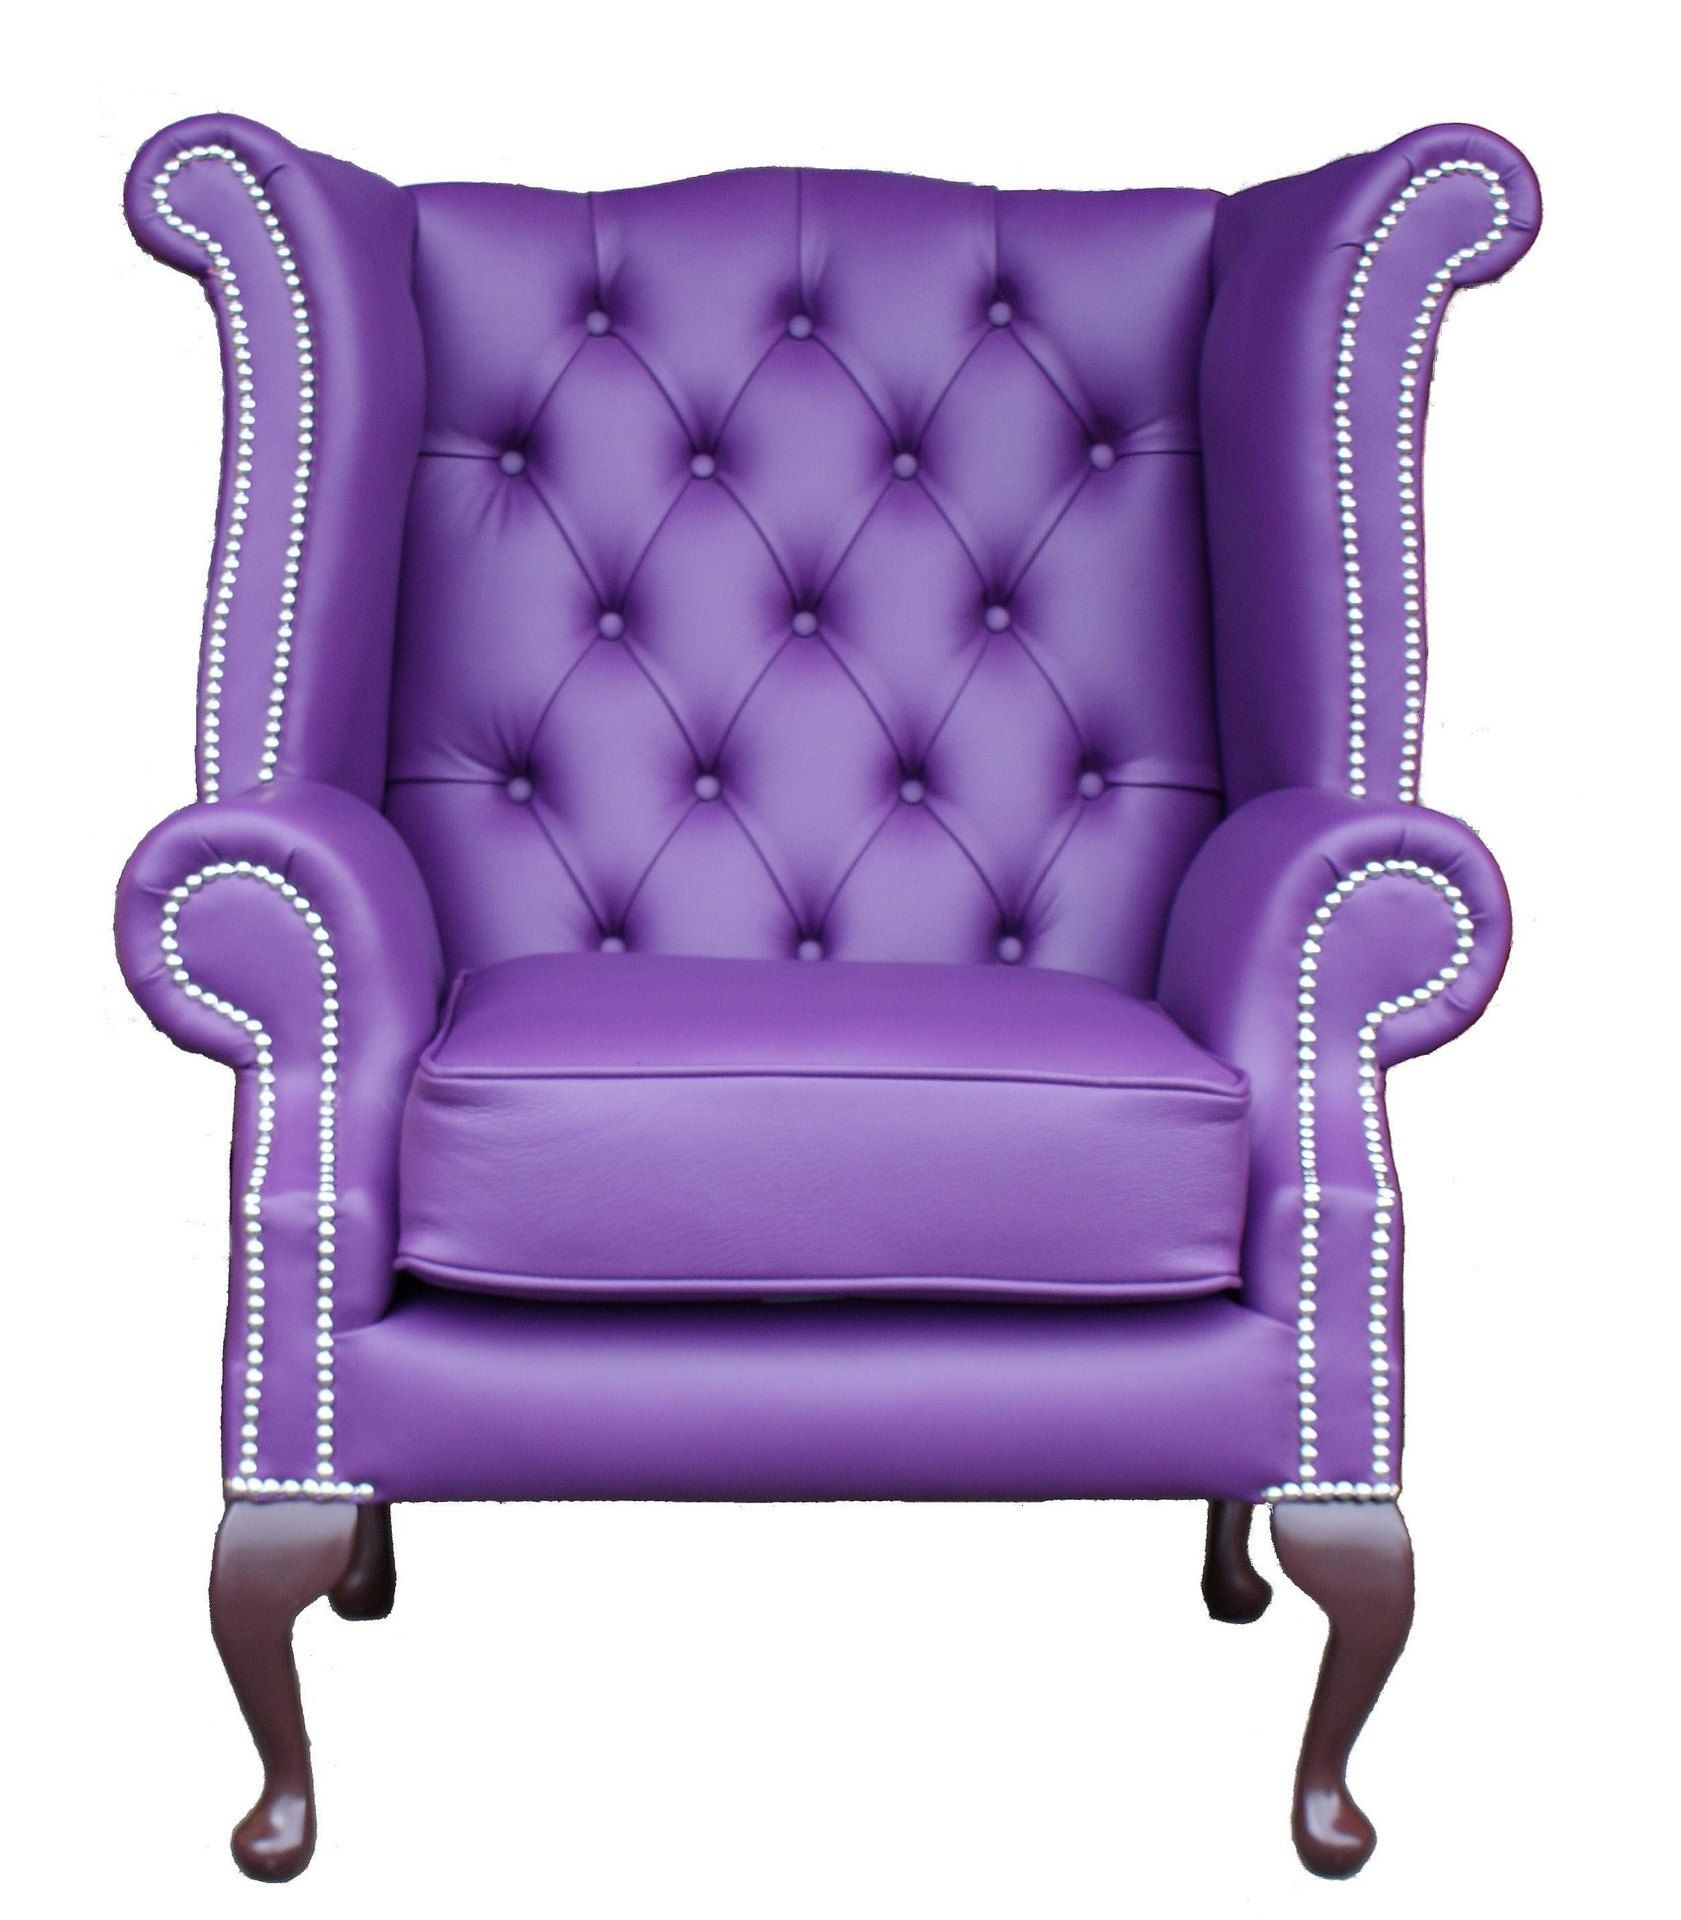 Purlpe Chesterfield Armchair My Purple Passion